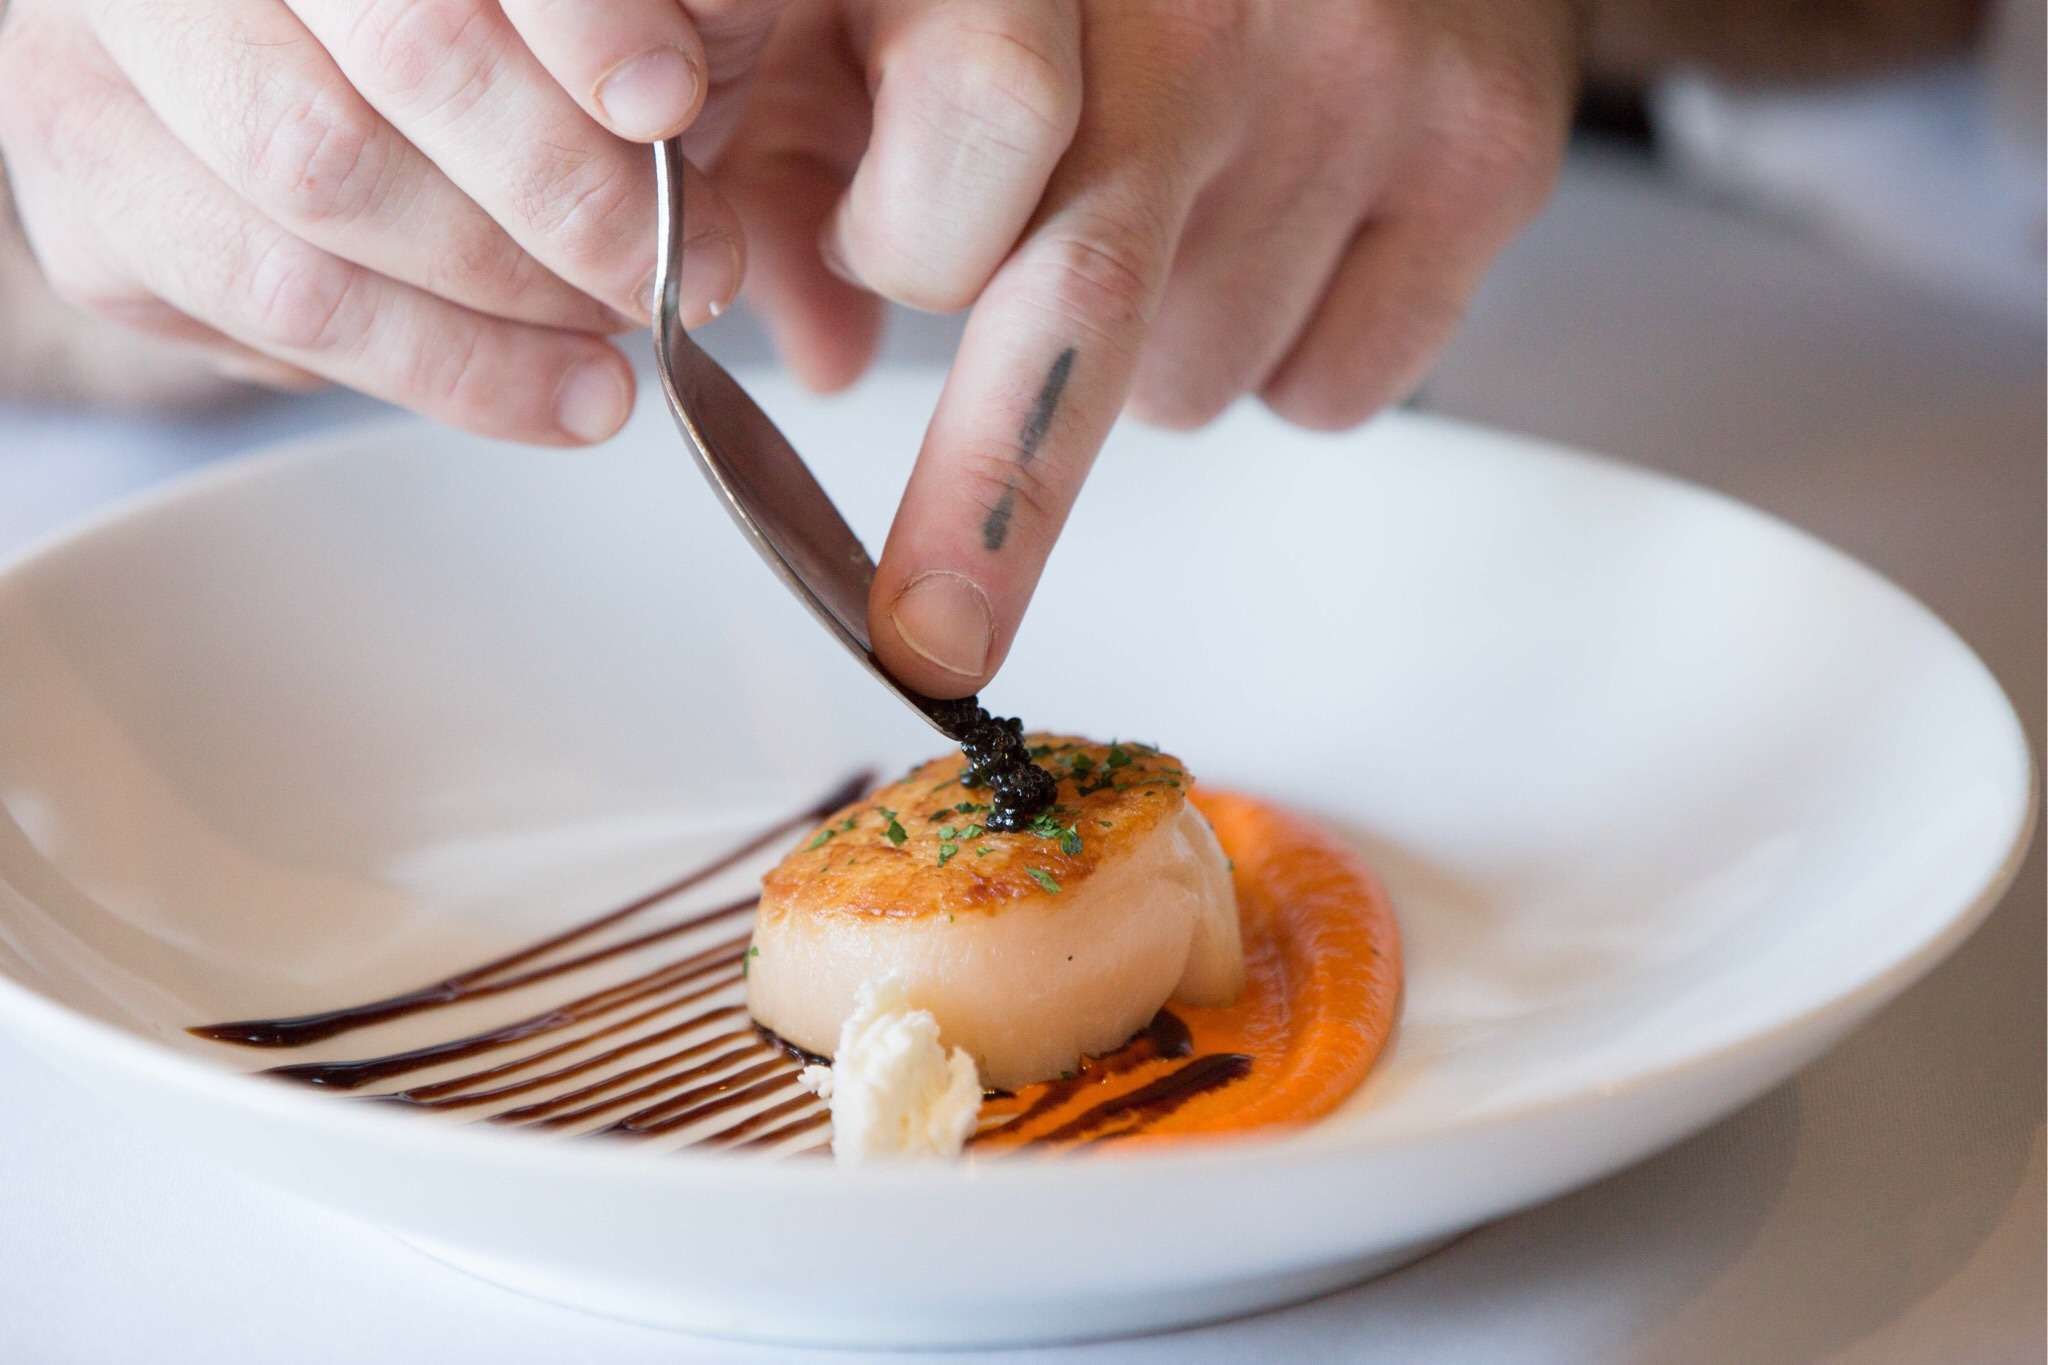 Single scallop on a plate with an orange sauce and a brown sauce as decoration. A pair of hands is transferring caviar from a spoon to the scallop